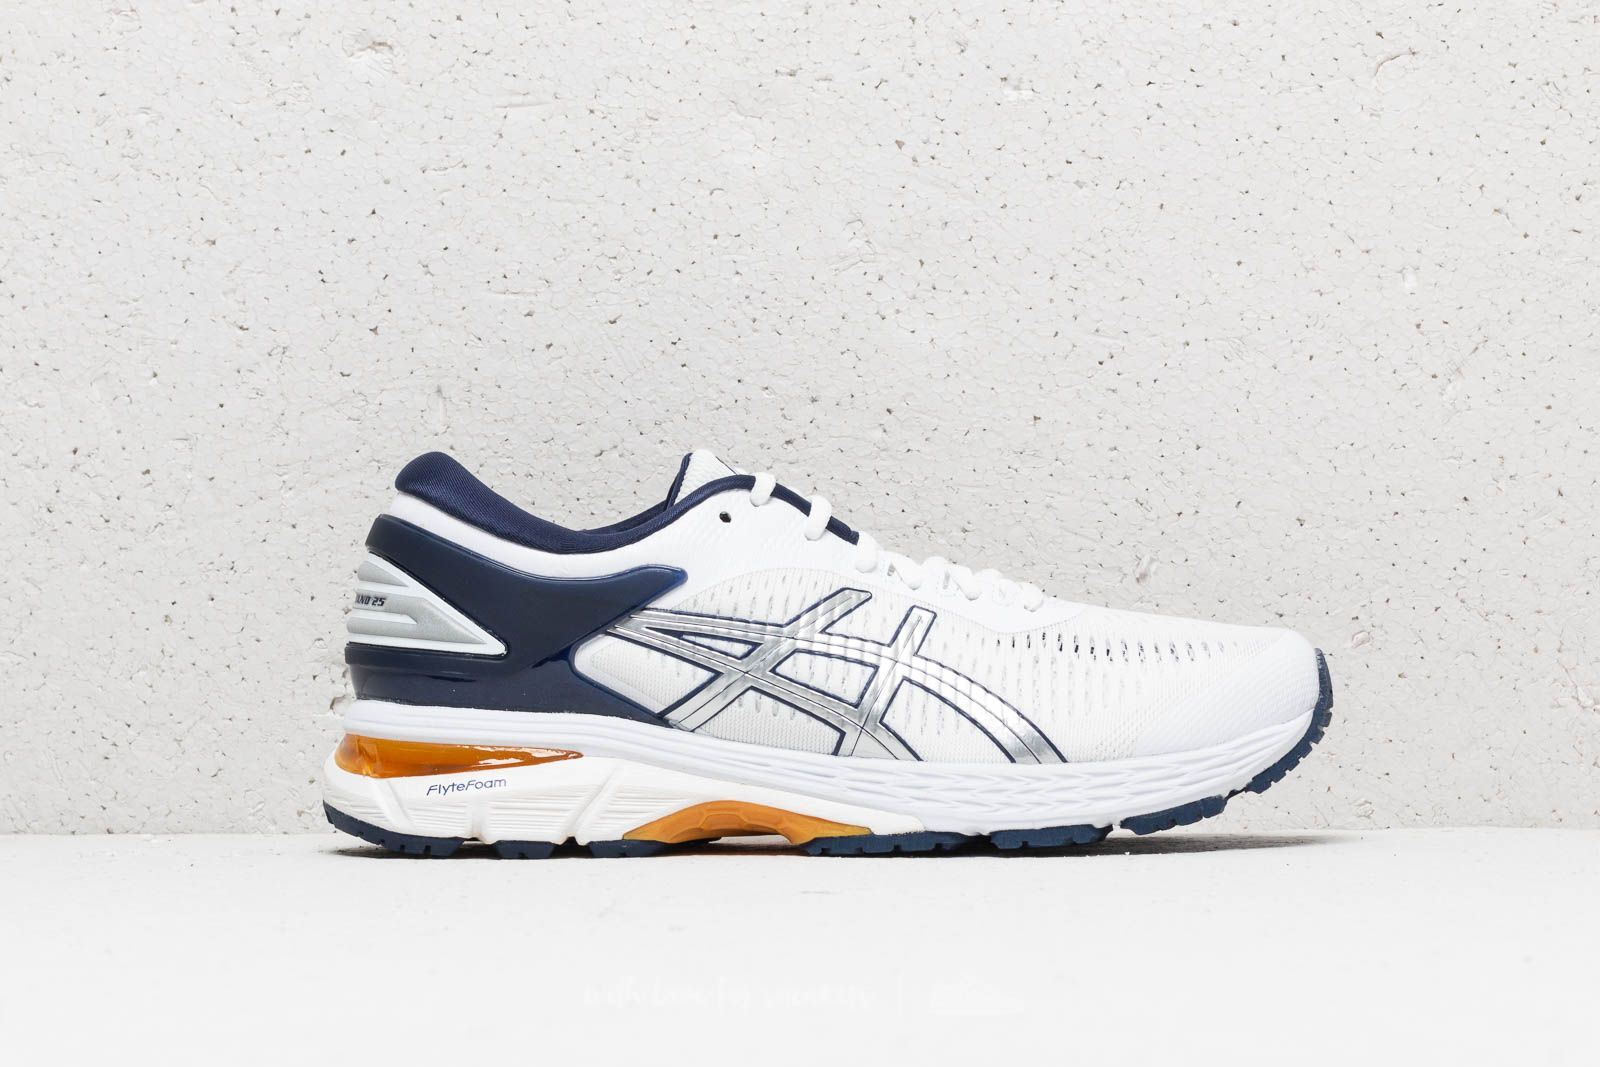 b8d841d2 Asics x Naked Gel-Kayano 25 White/ Peacoat at a great price £87